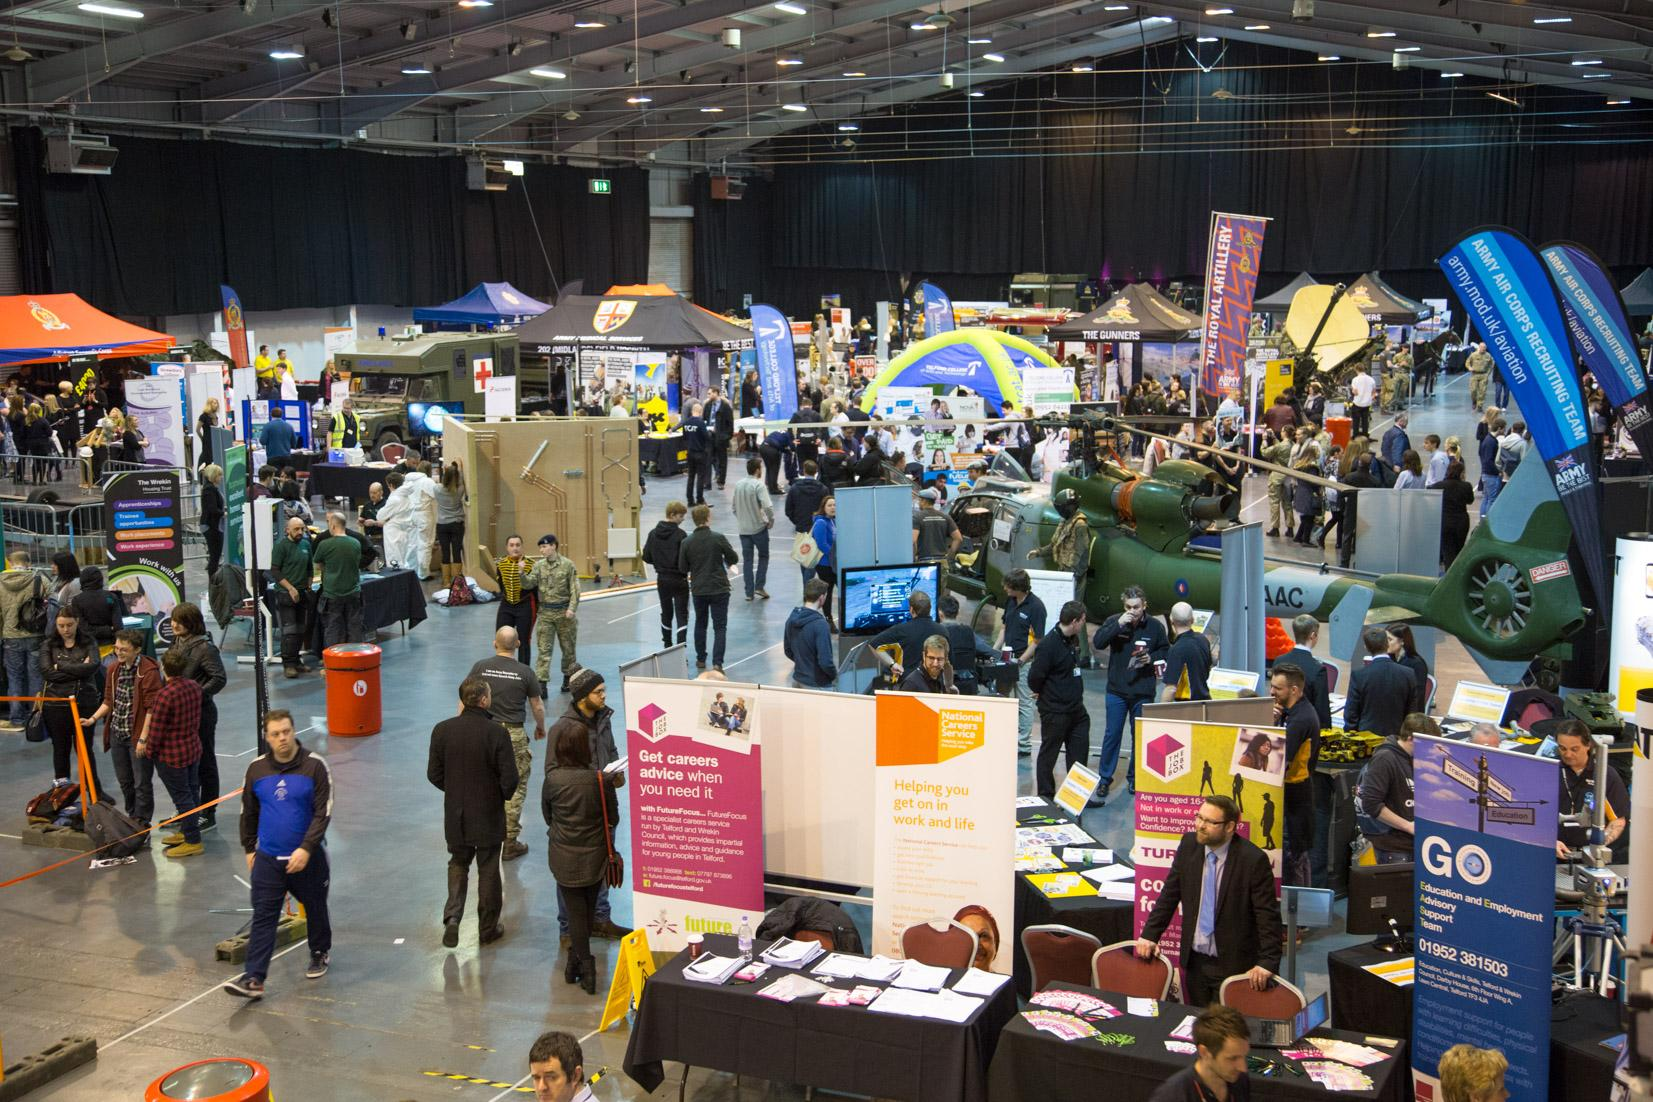 A view of The Apprenticeship Show 2016